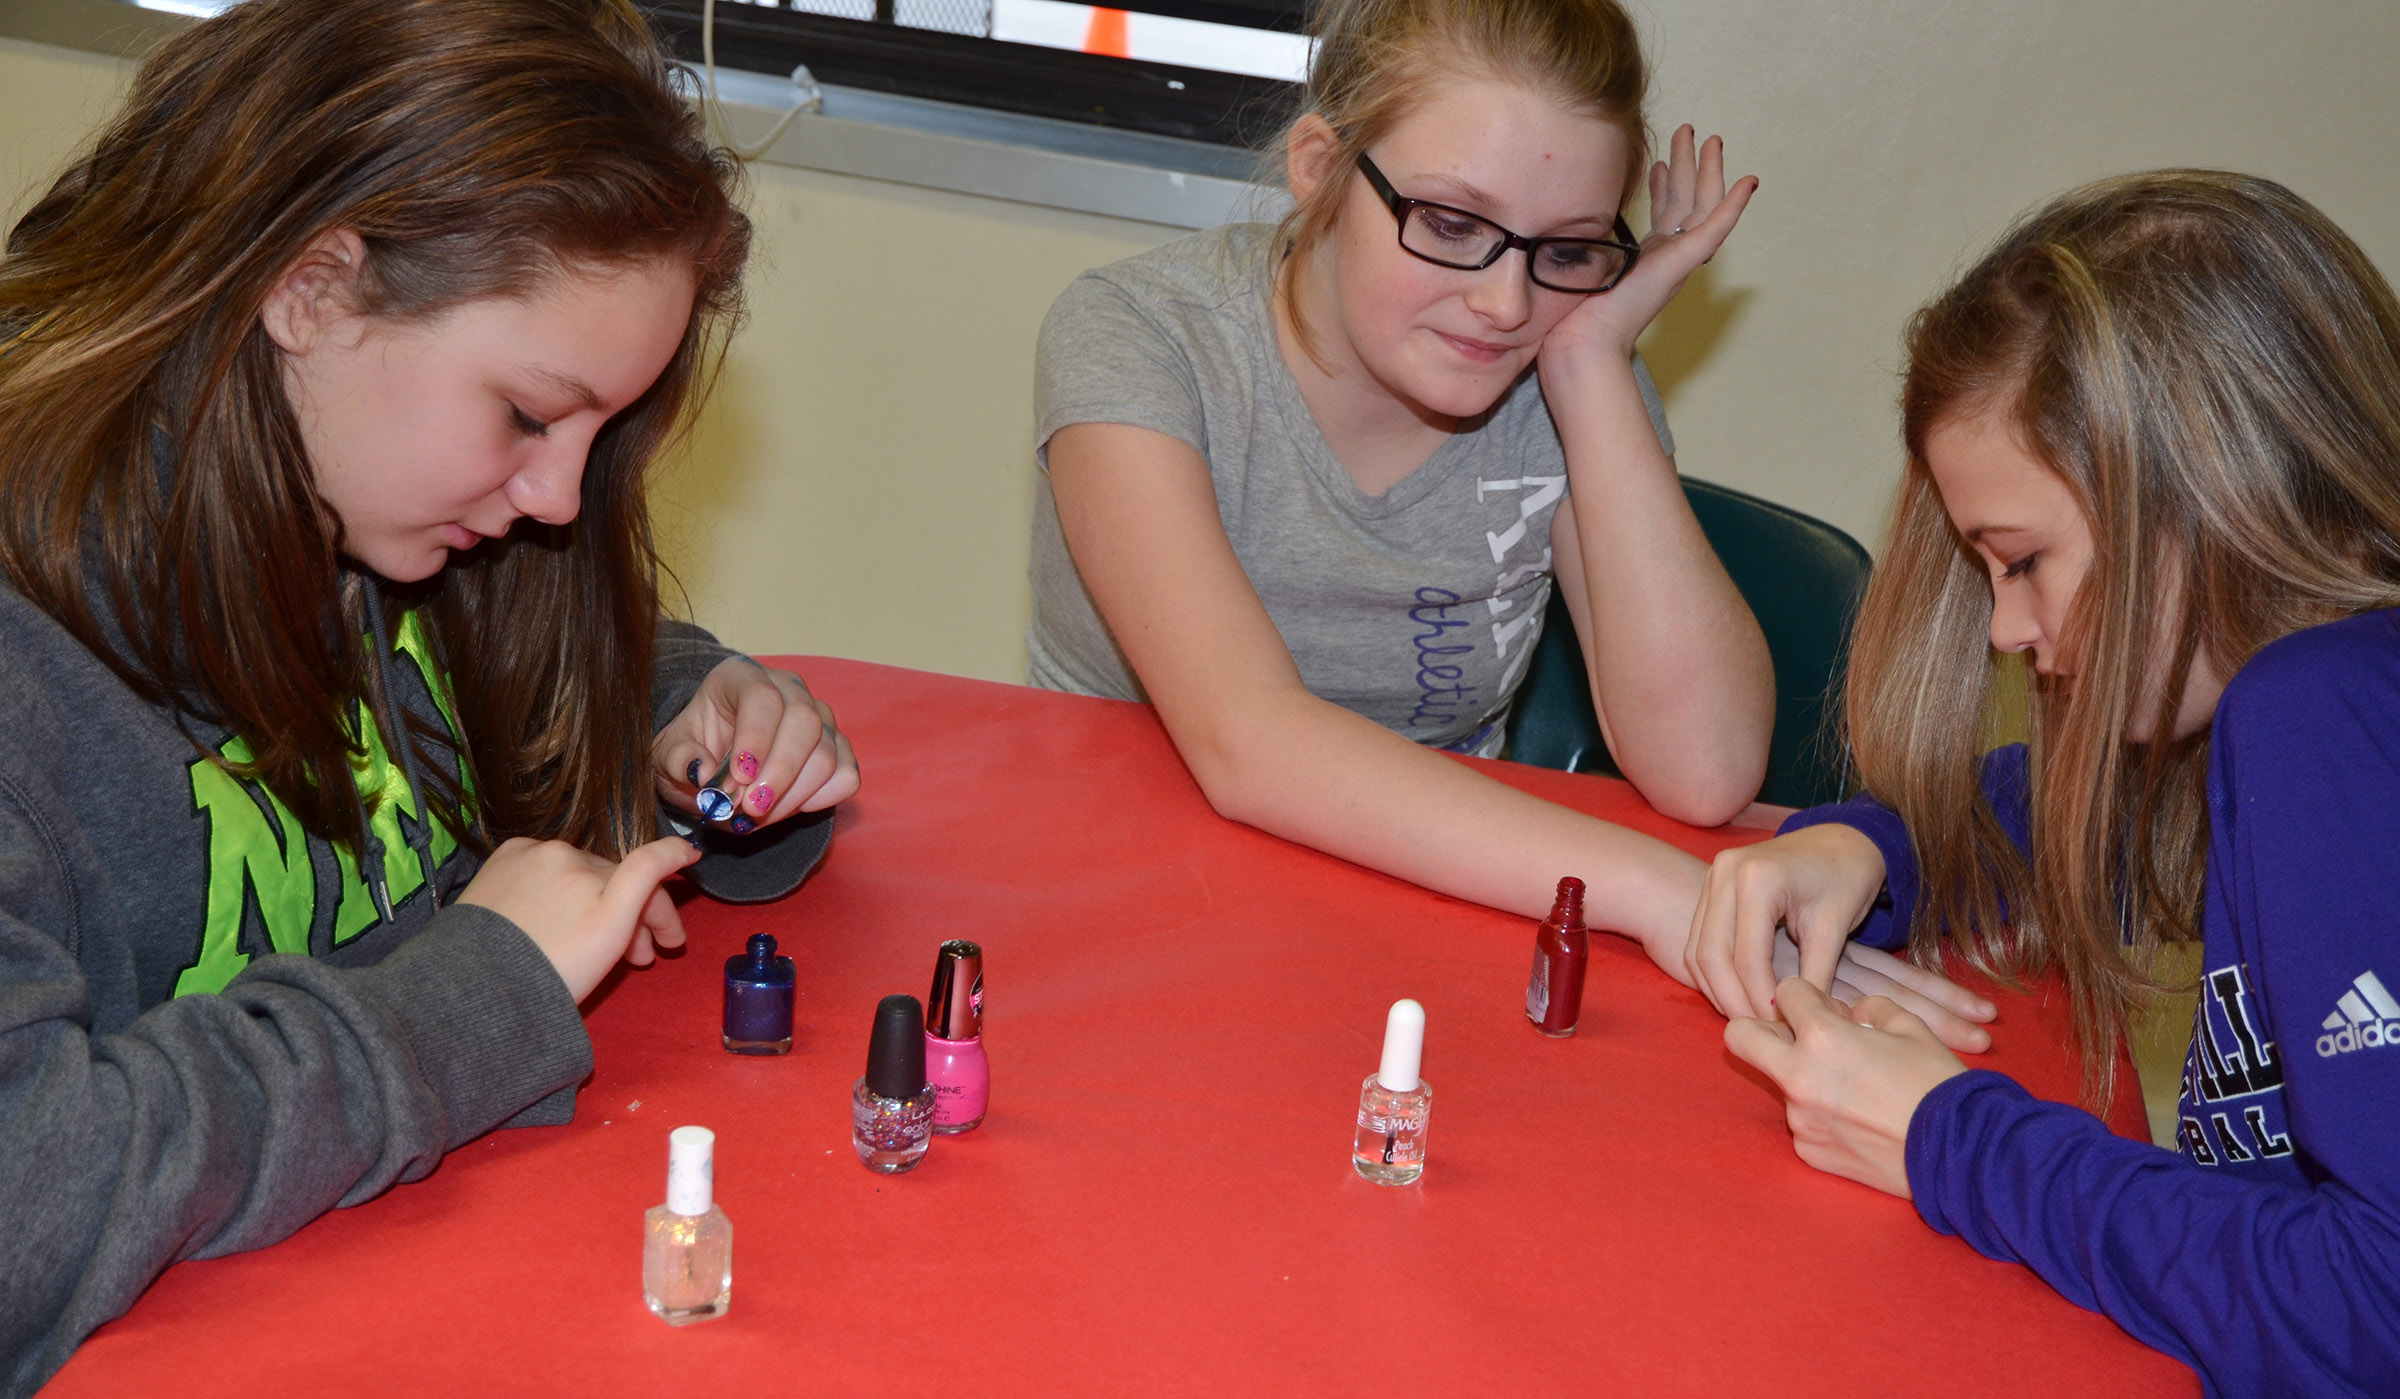 CMS eighth-grader Carly Adams, at right, paints Summer Jacobs's nails as fifth-grader Margaret Johnson paints her own nails.